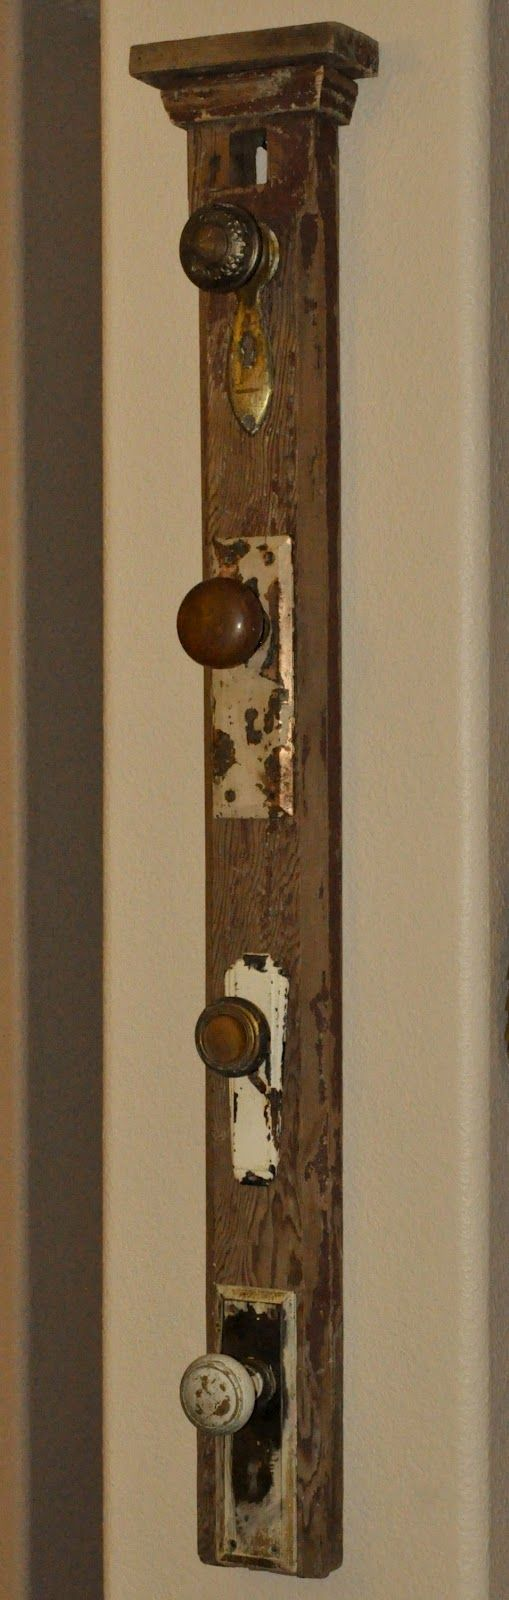 repurposed front door | ... that Pinner made out of a salvaged mantle post, door knobs, and faceplates